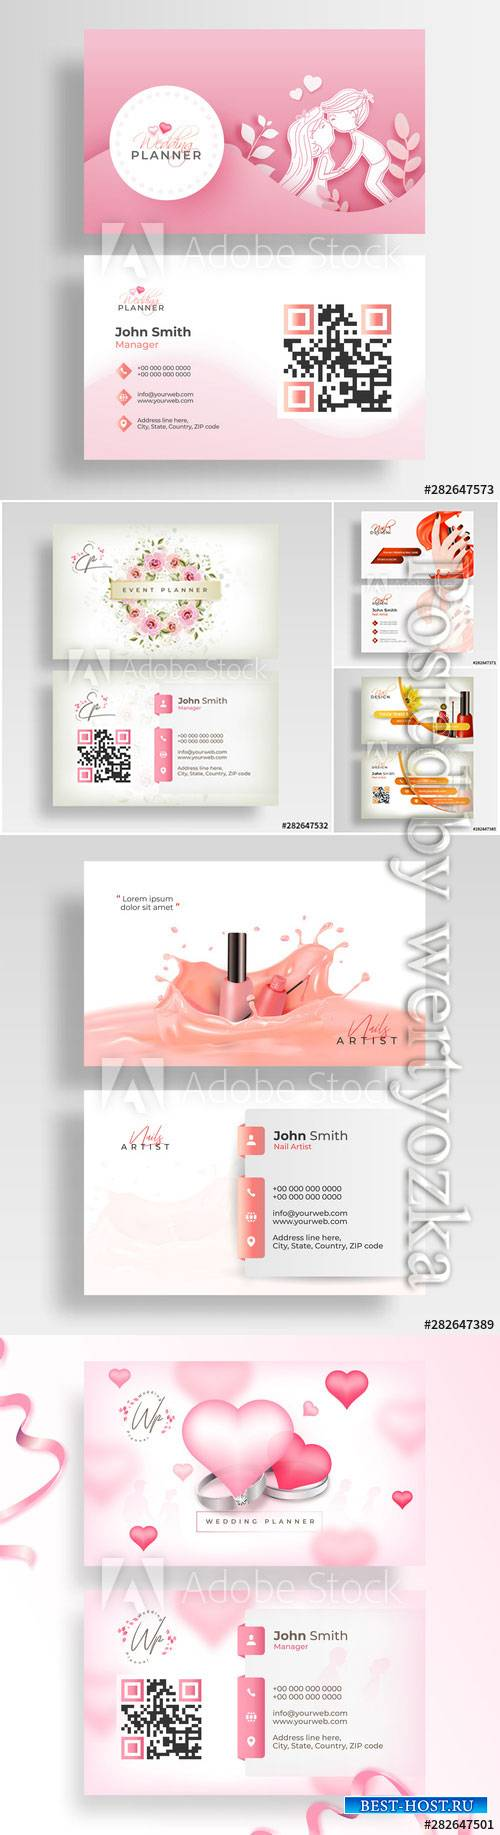 Wedding business cards, business cards for beauty salon in vector